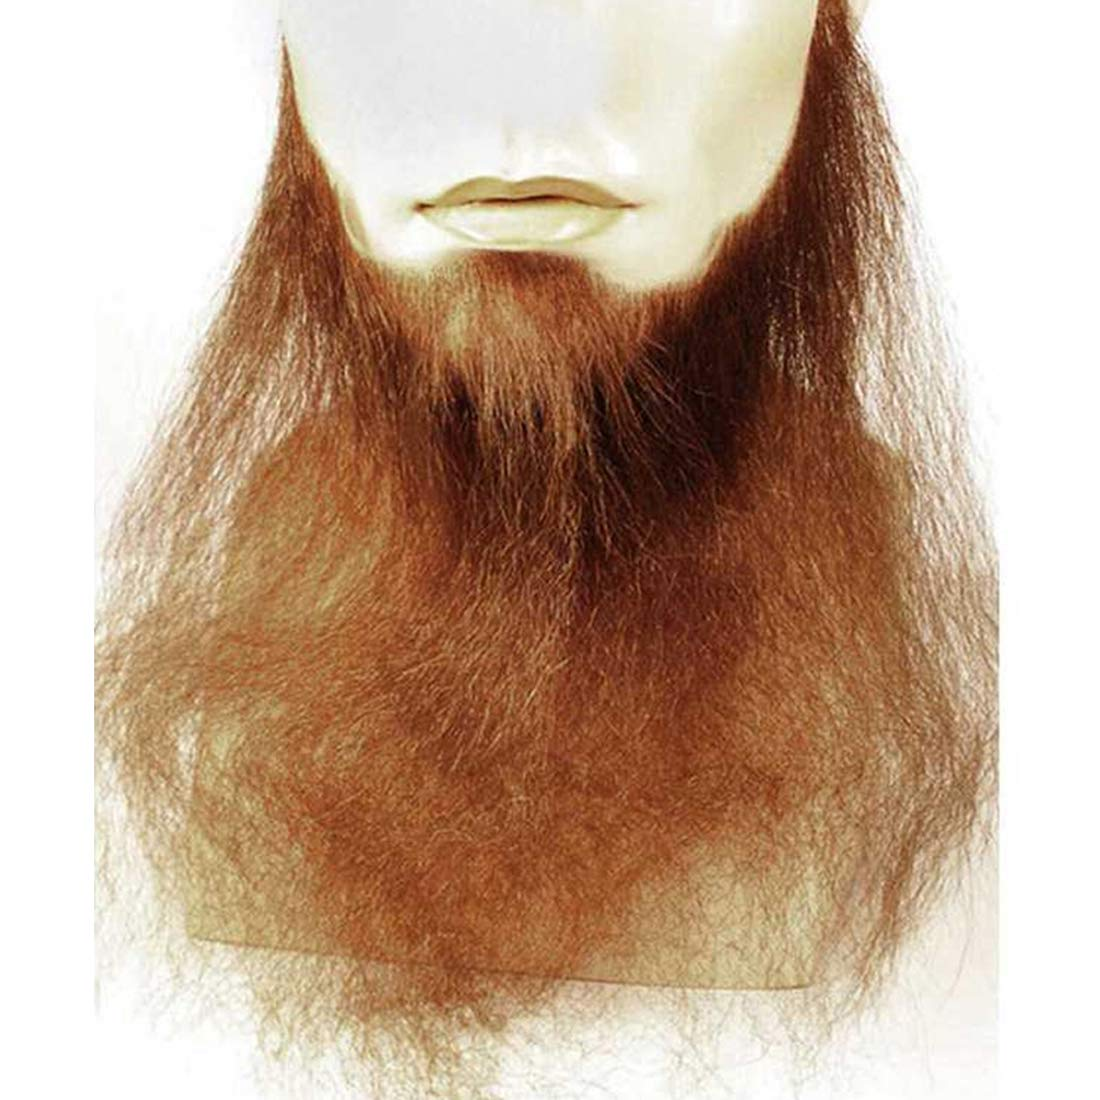 16'' Long Full Face Beard Color Strawberry Blonde - Lacey Wigs Human Hair Duck Dynasty Hand Made Fake Facial Biker Amish Bundle Costume Wig Care Guide by Lacey Morris